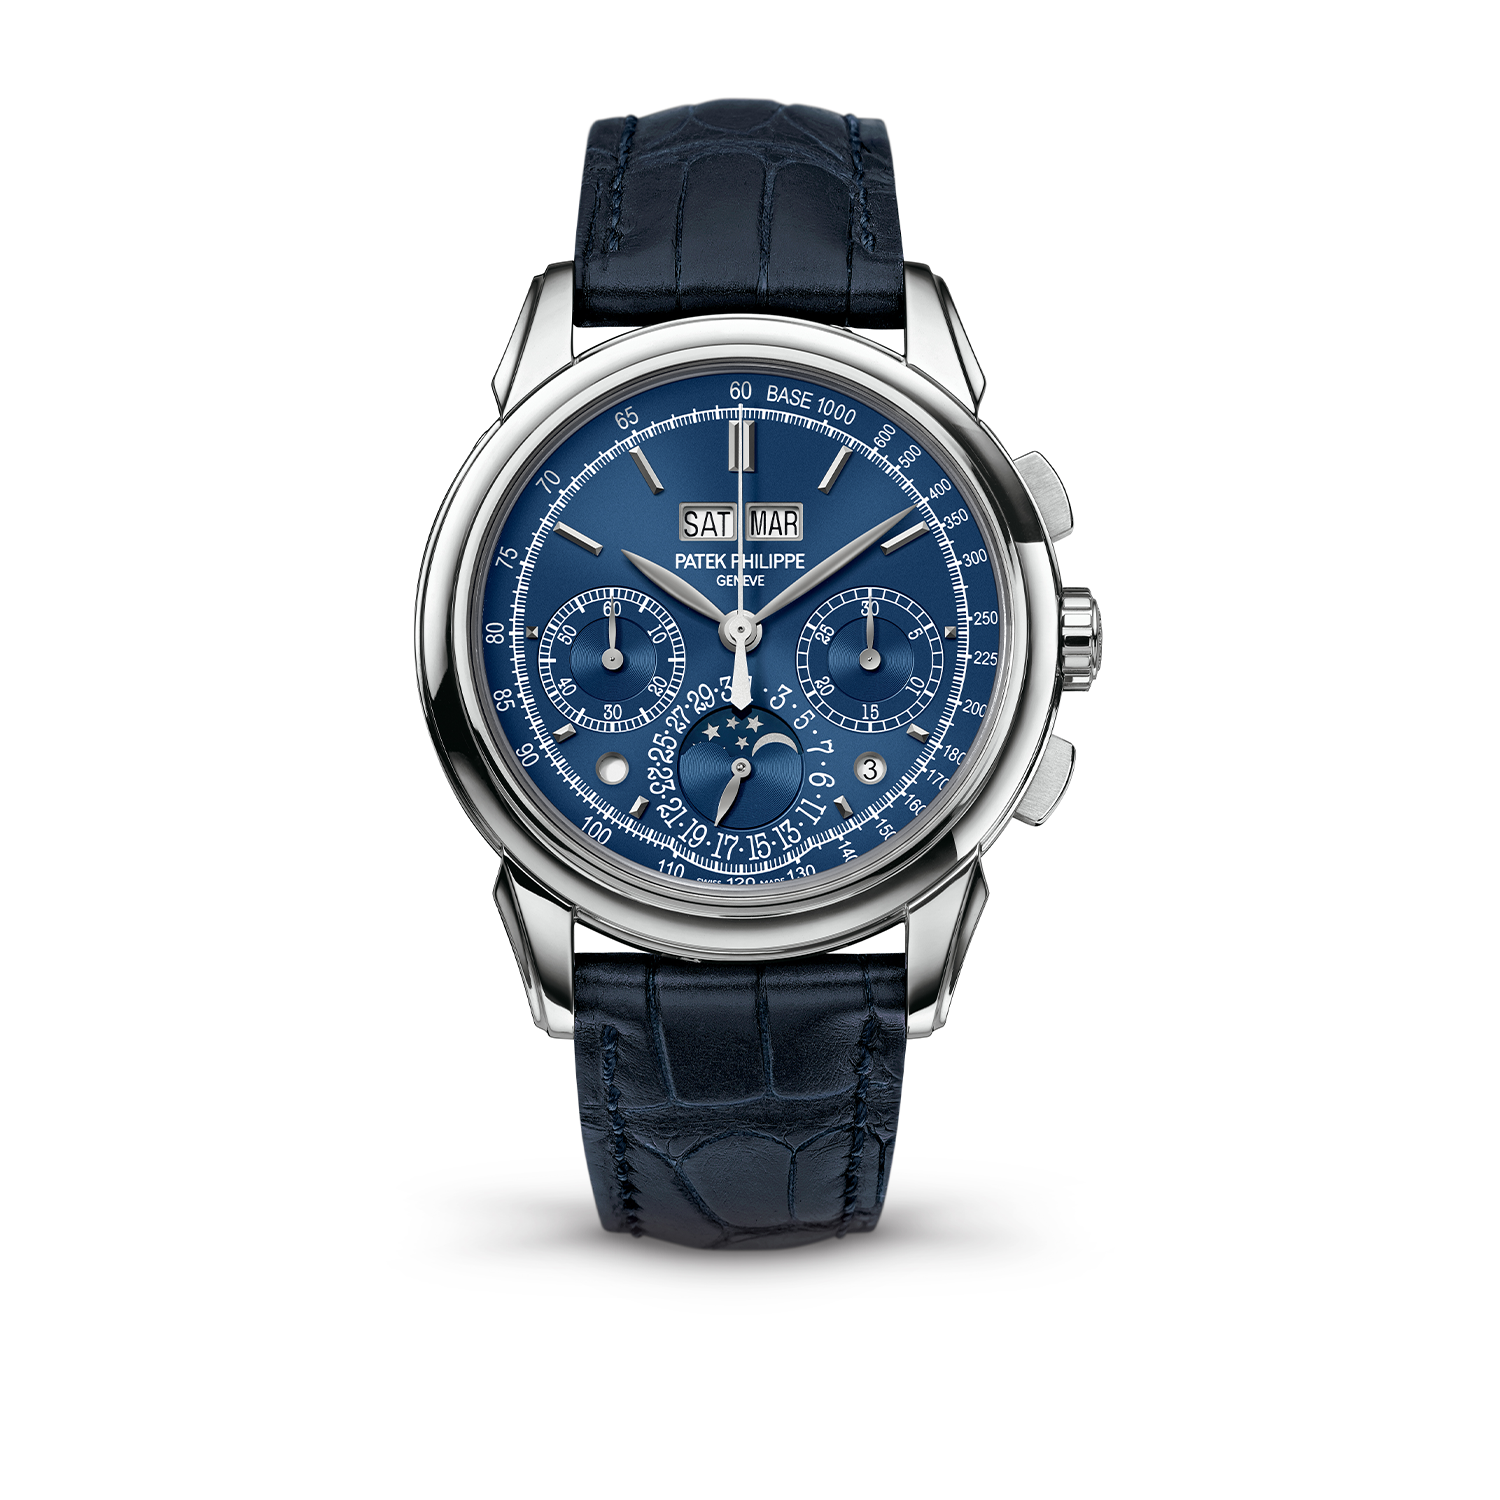 "2014 version of the Patek Philippe ref. 5270 in white gold with the blue dial, still with the infamous ""chin"" on the watch dial"